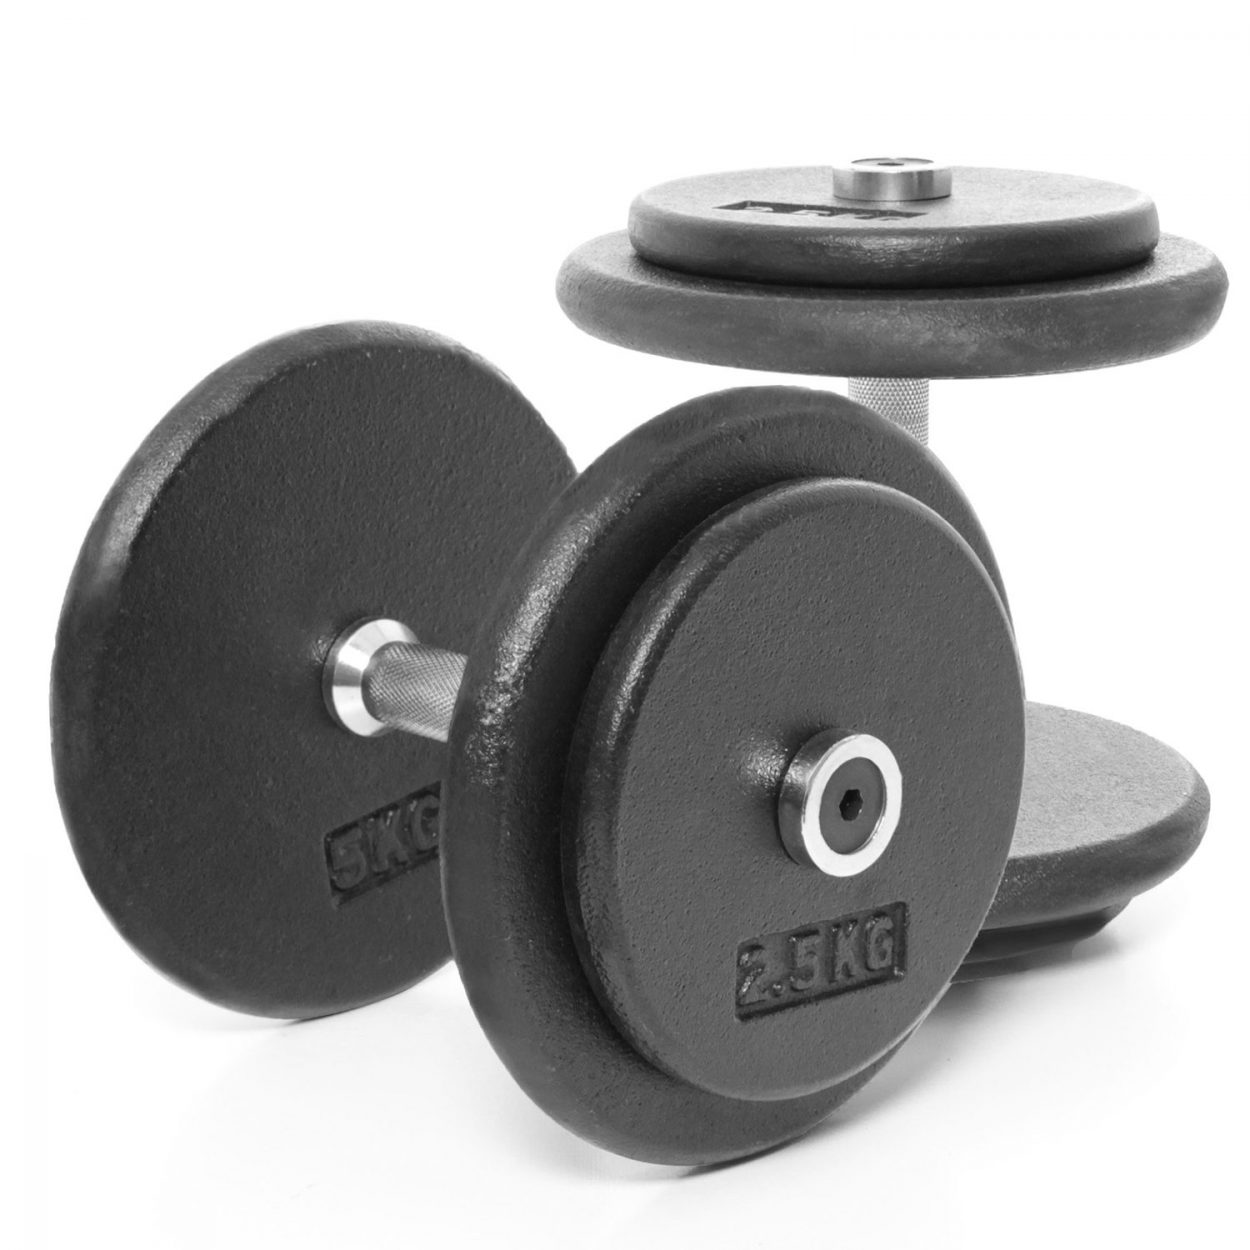 York Chrome Dumbbell Set 15kg: Body Power Pro-style Dumbbells 15kg (x2)